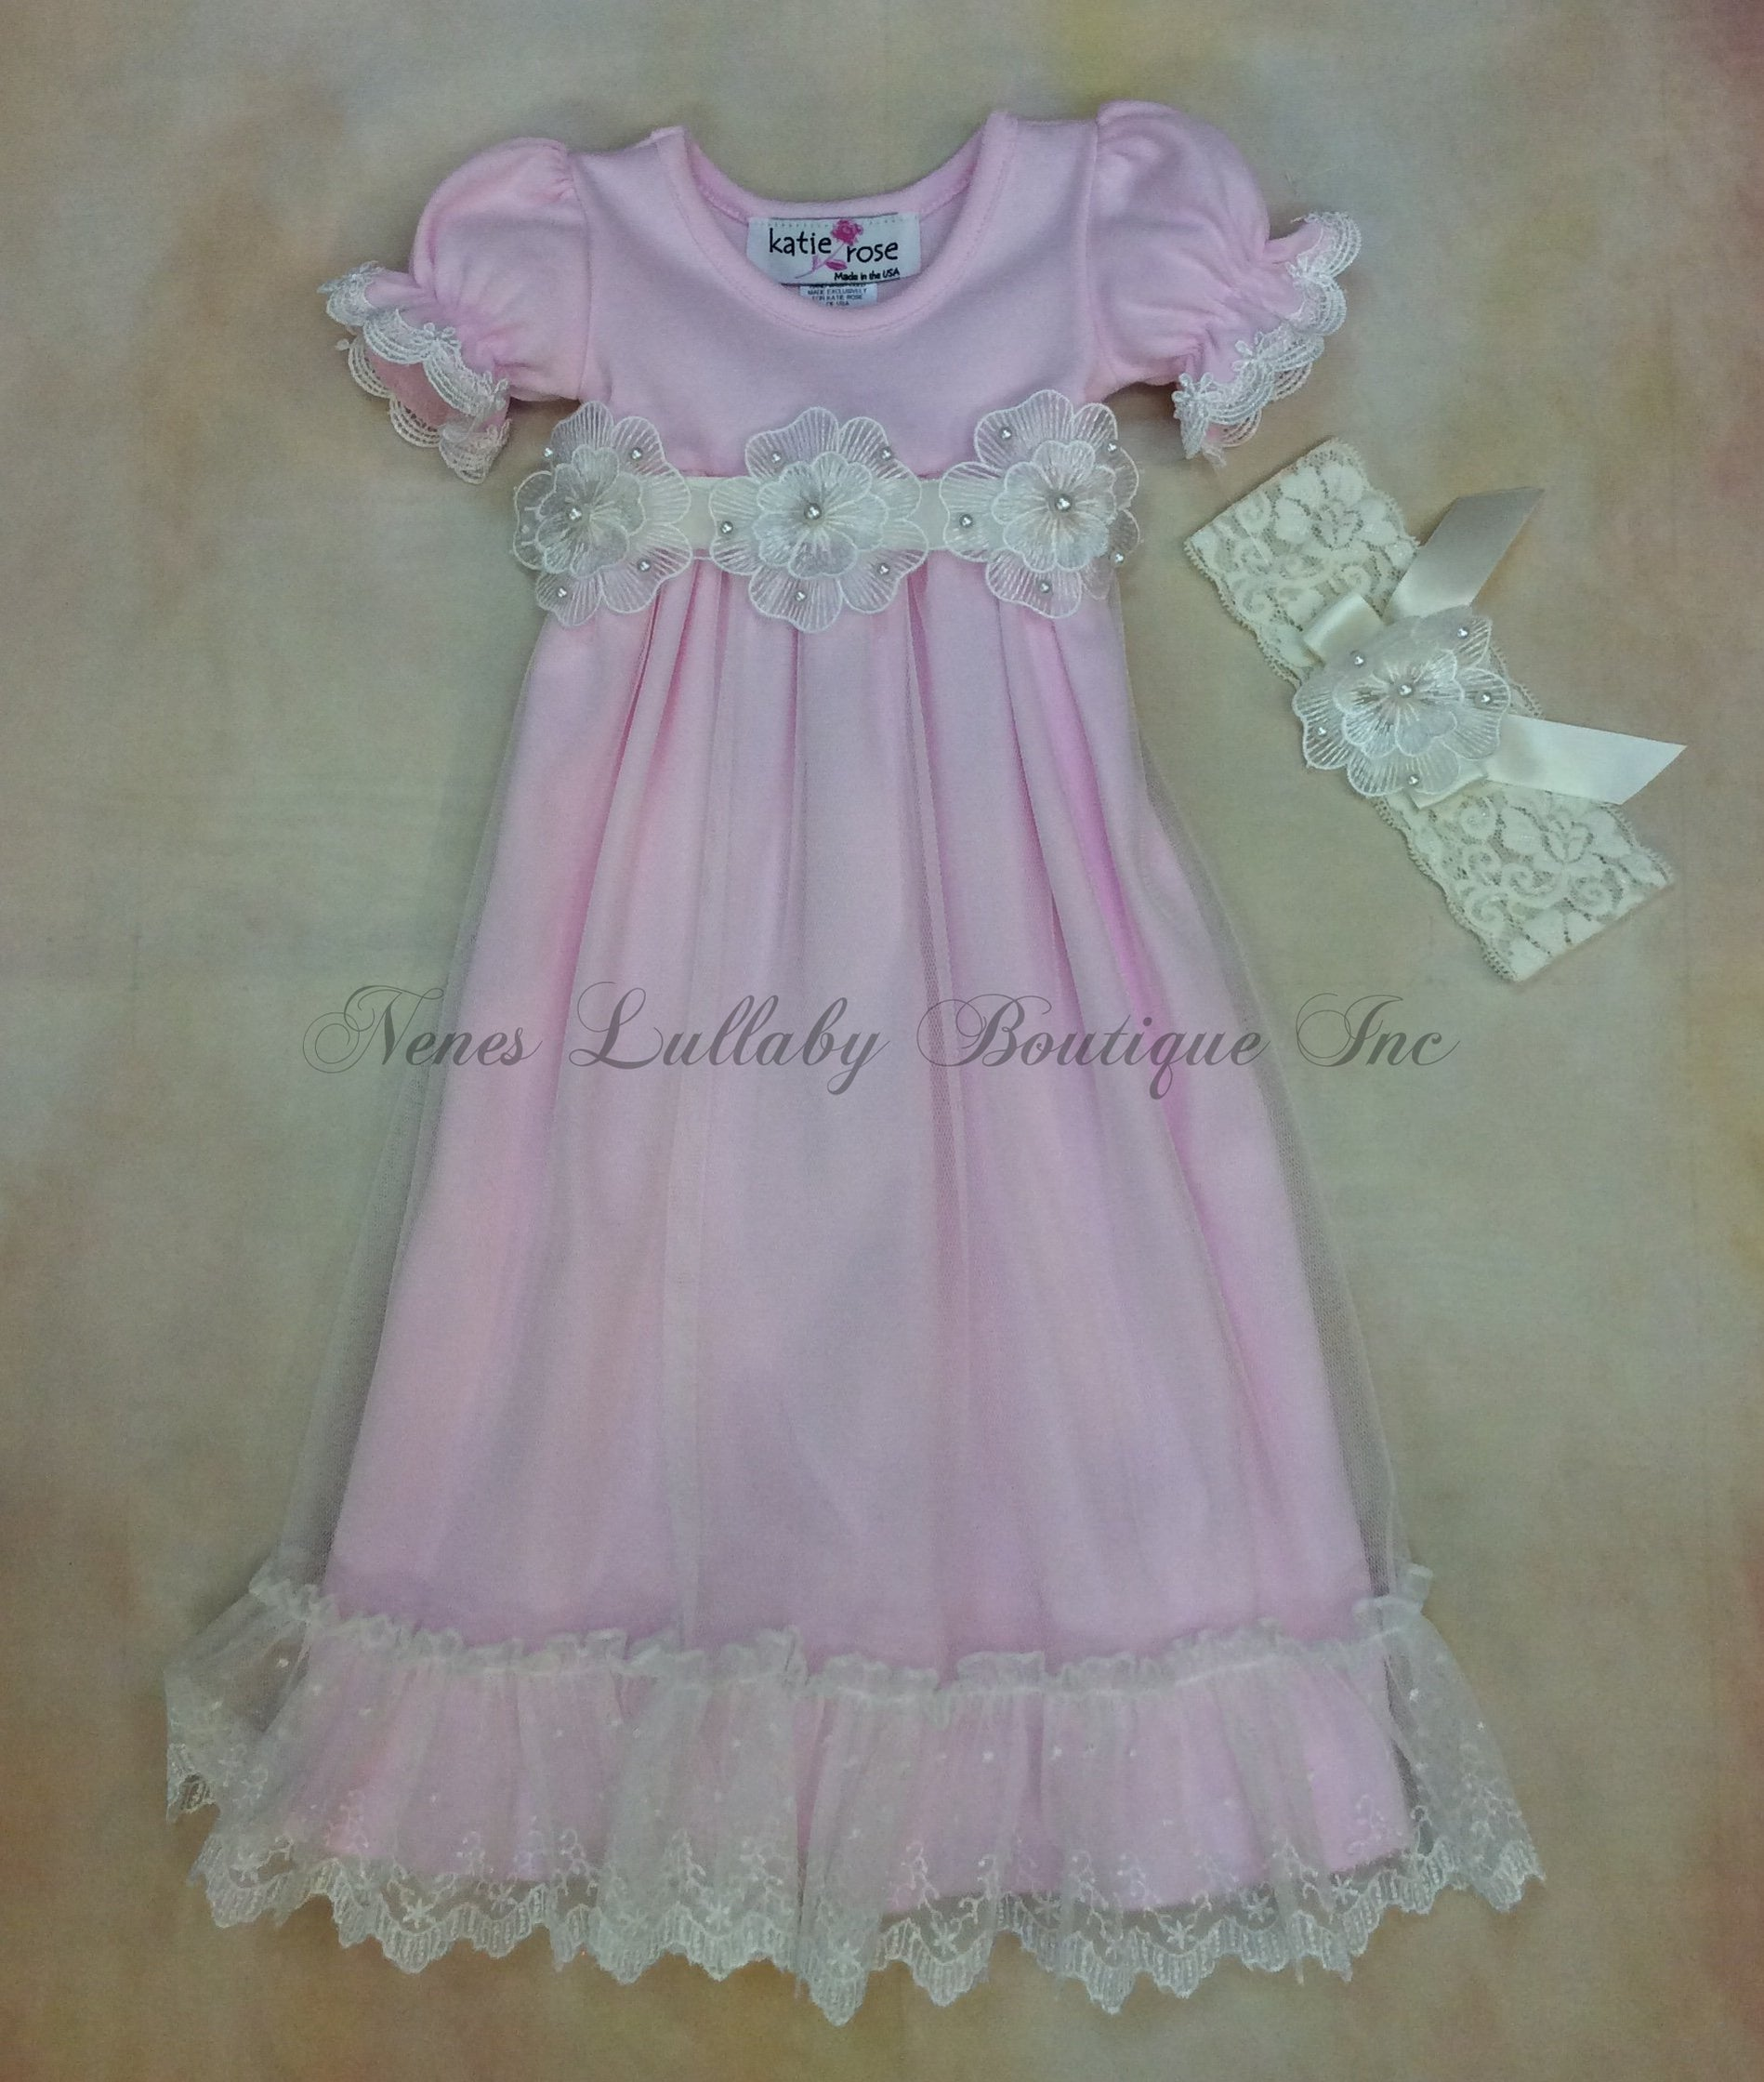 Katie Rose Piper Day Gown